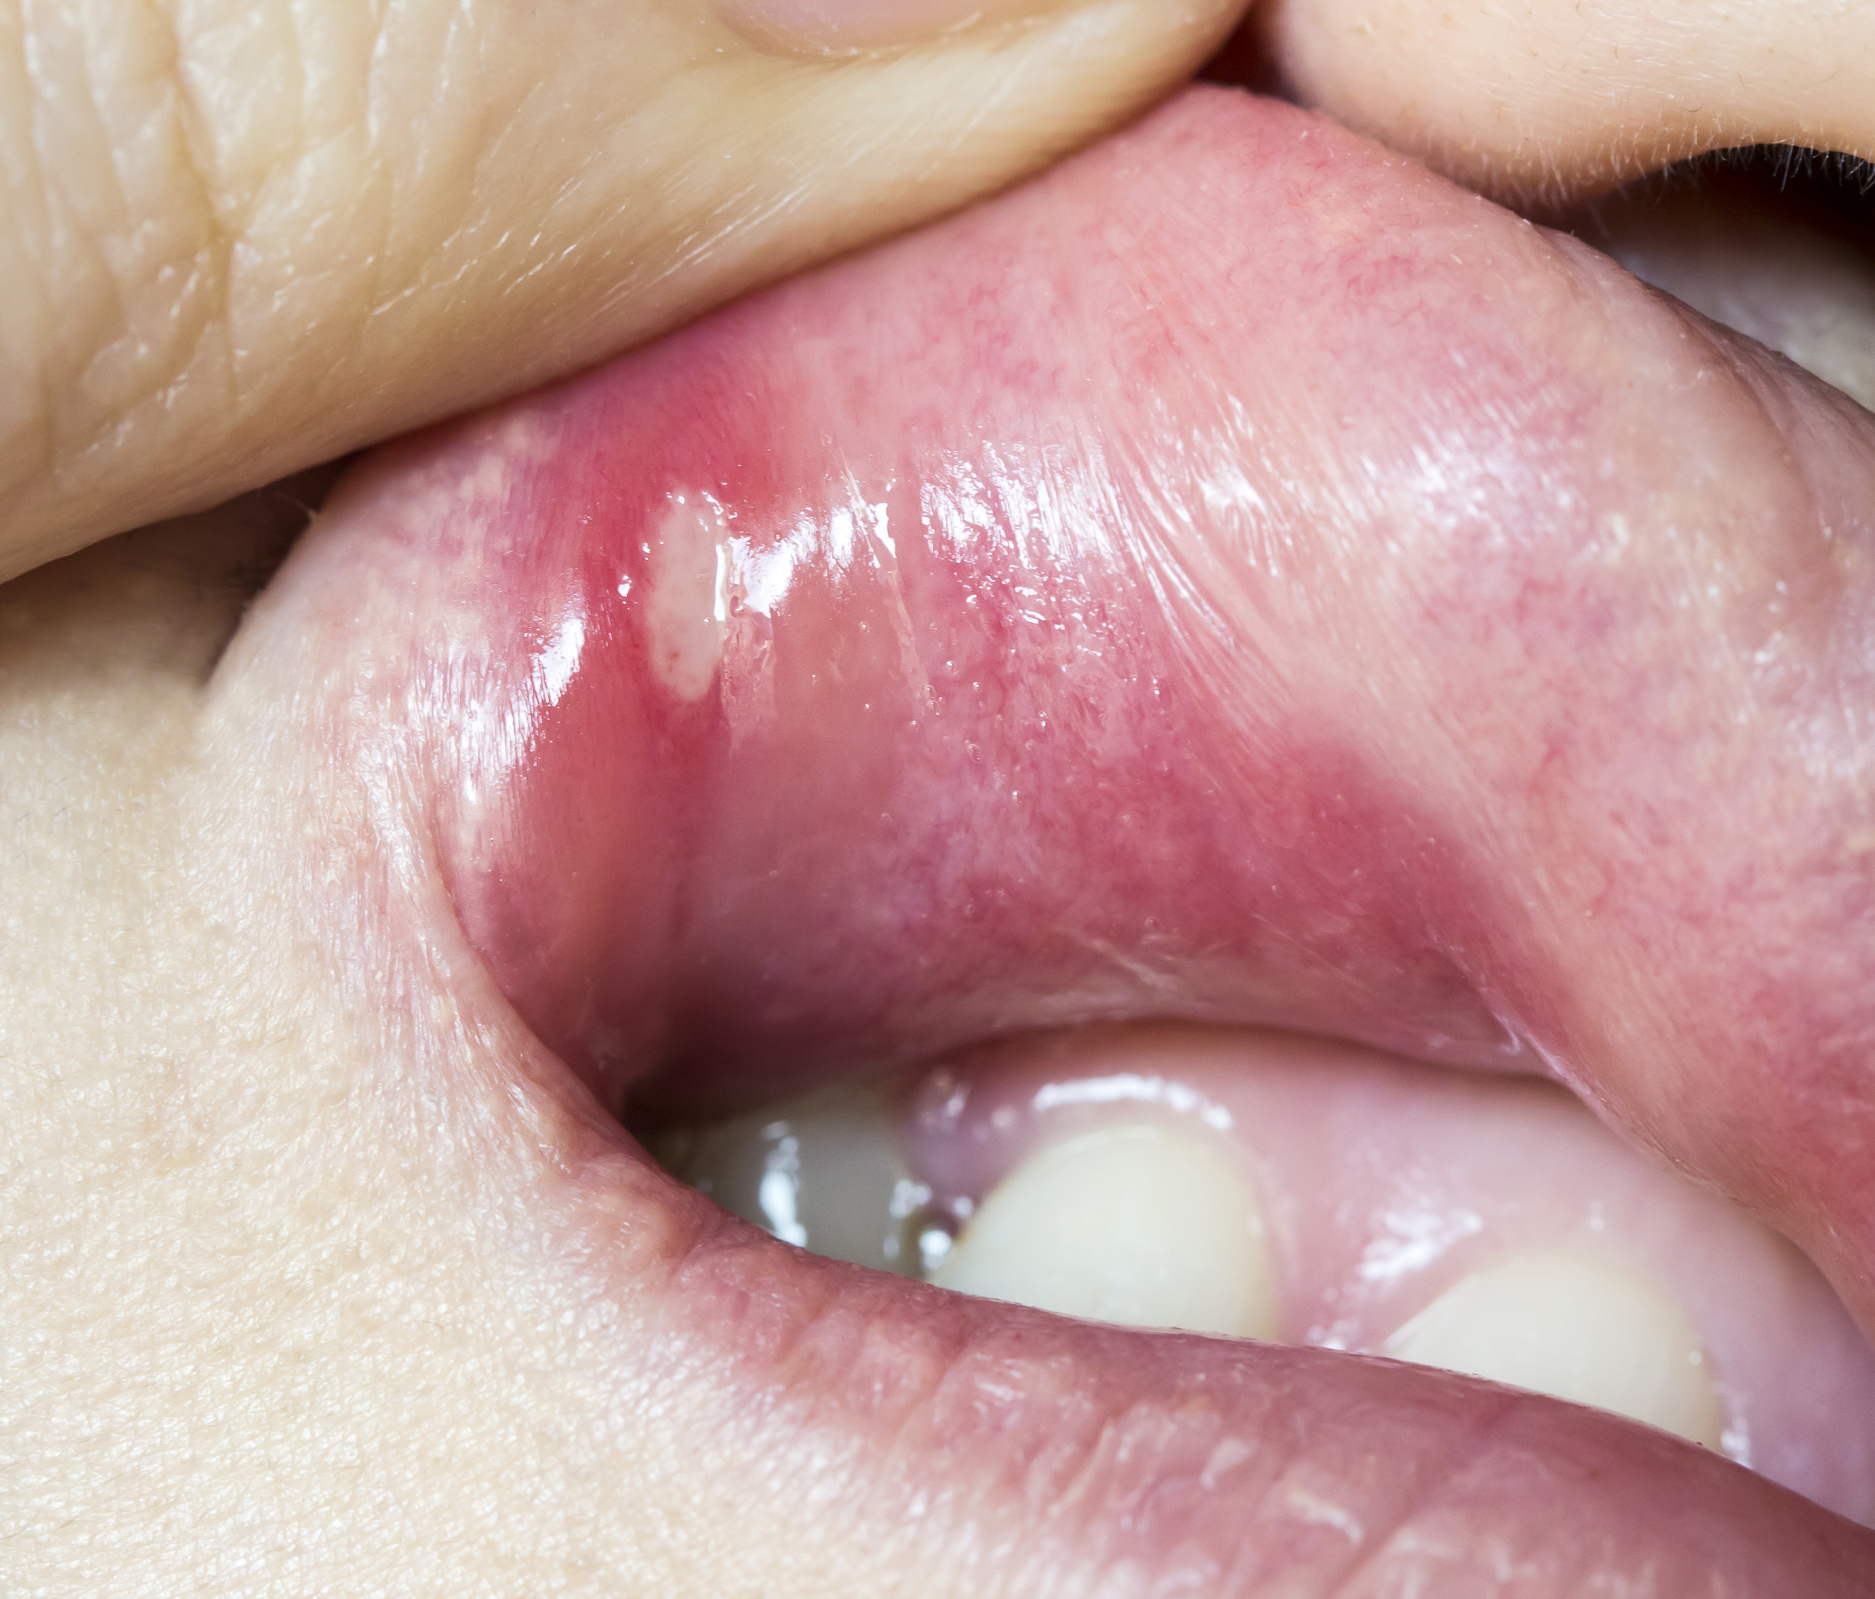 hpv cancer in mouth)